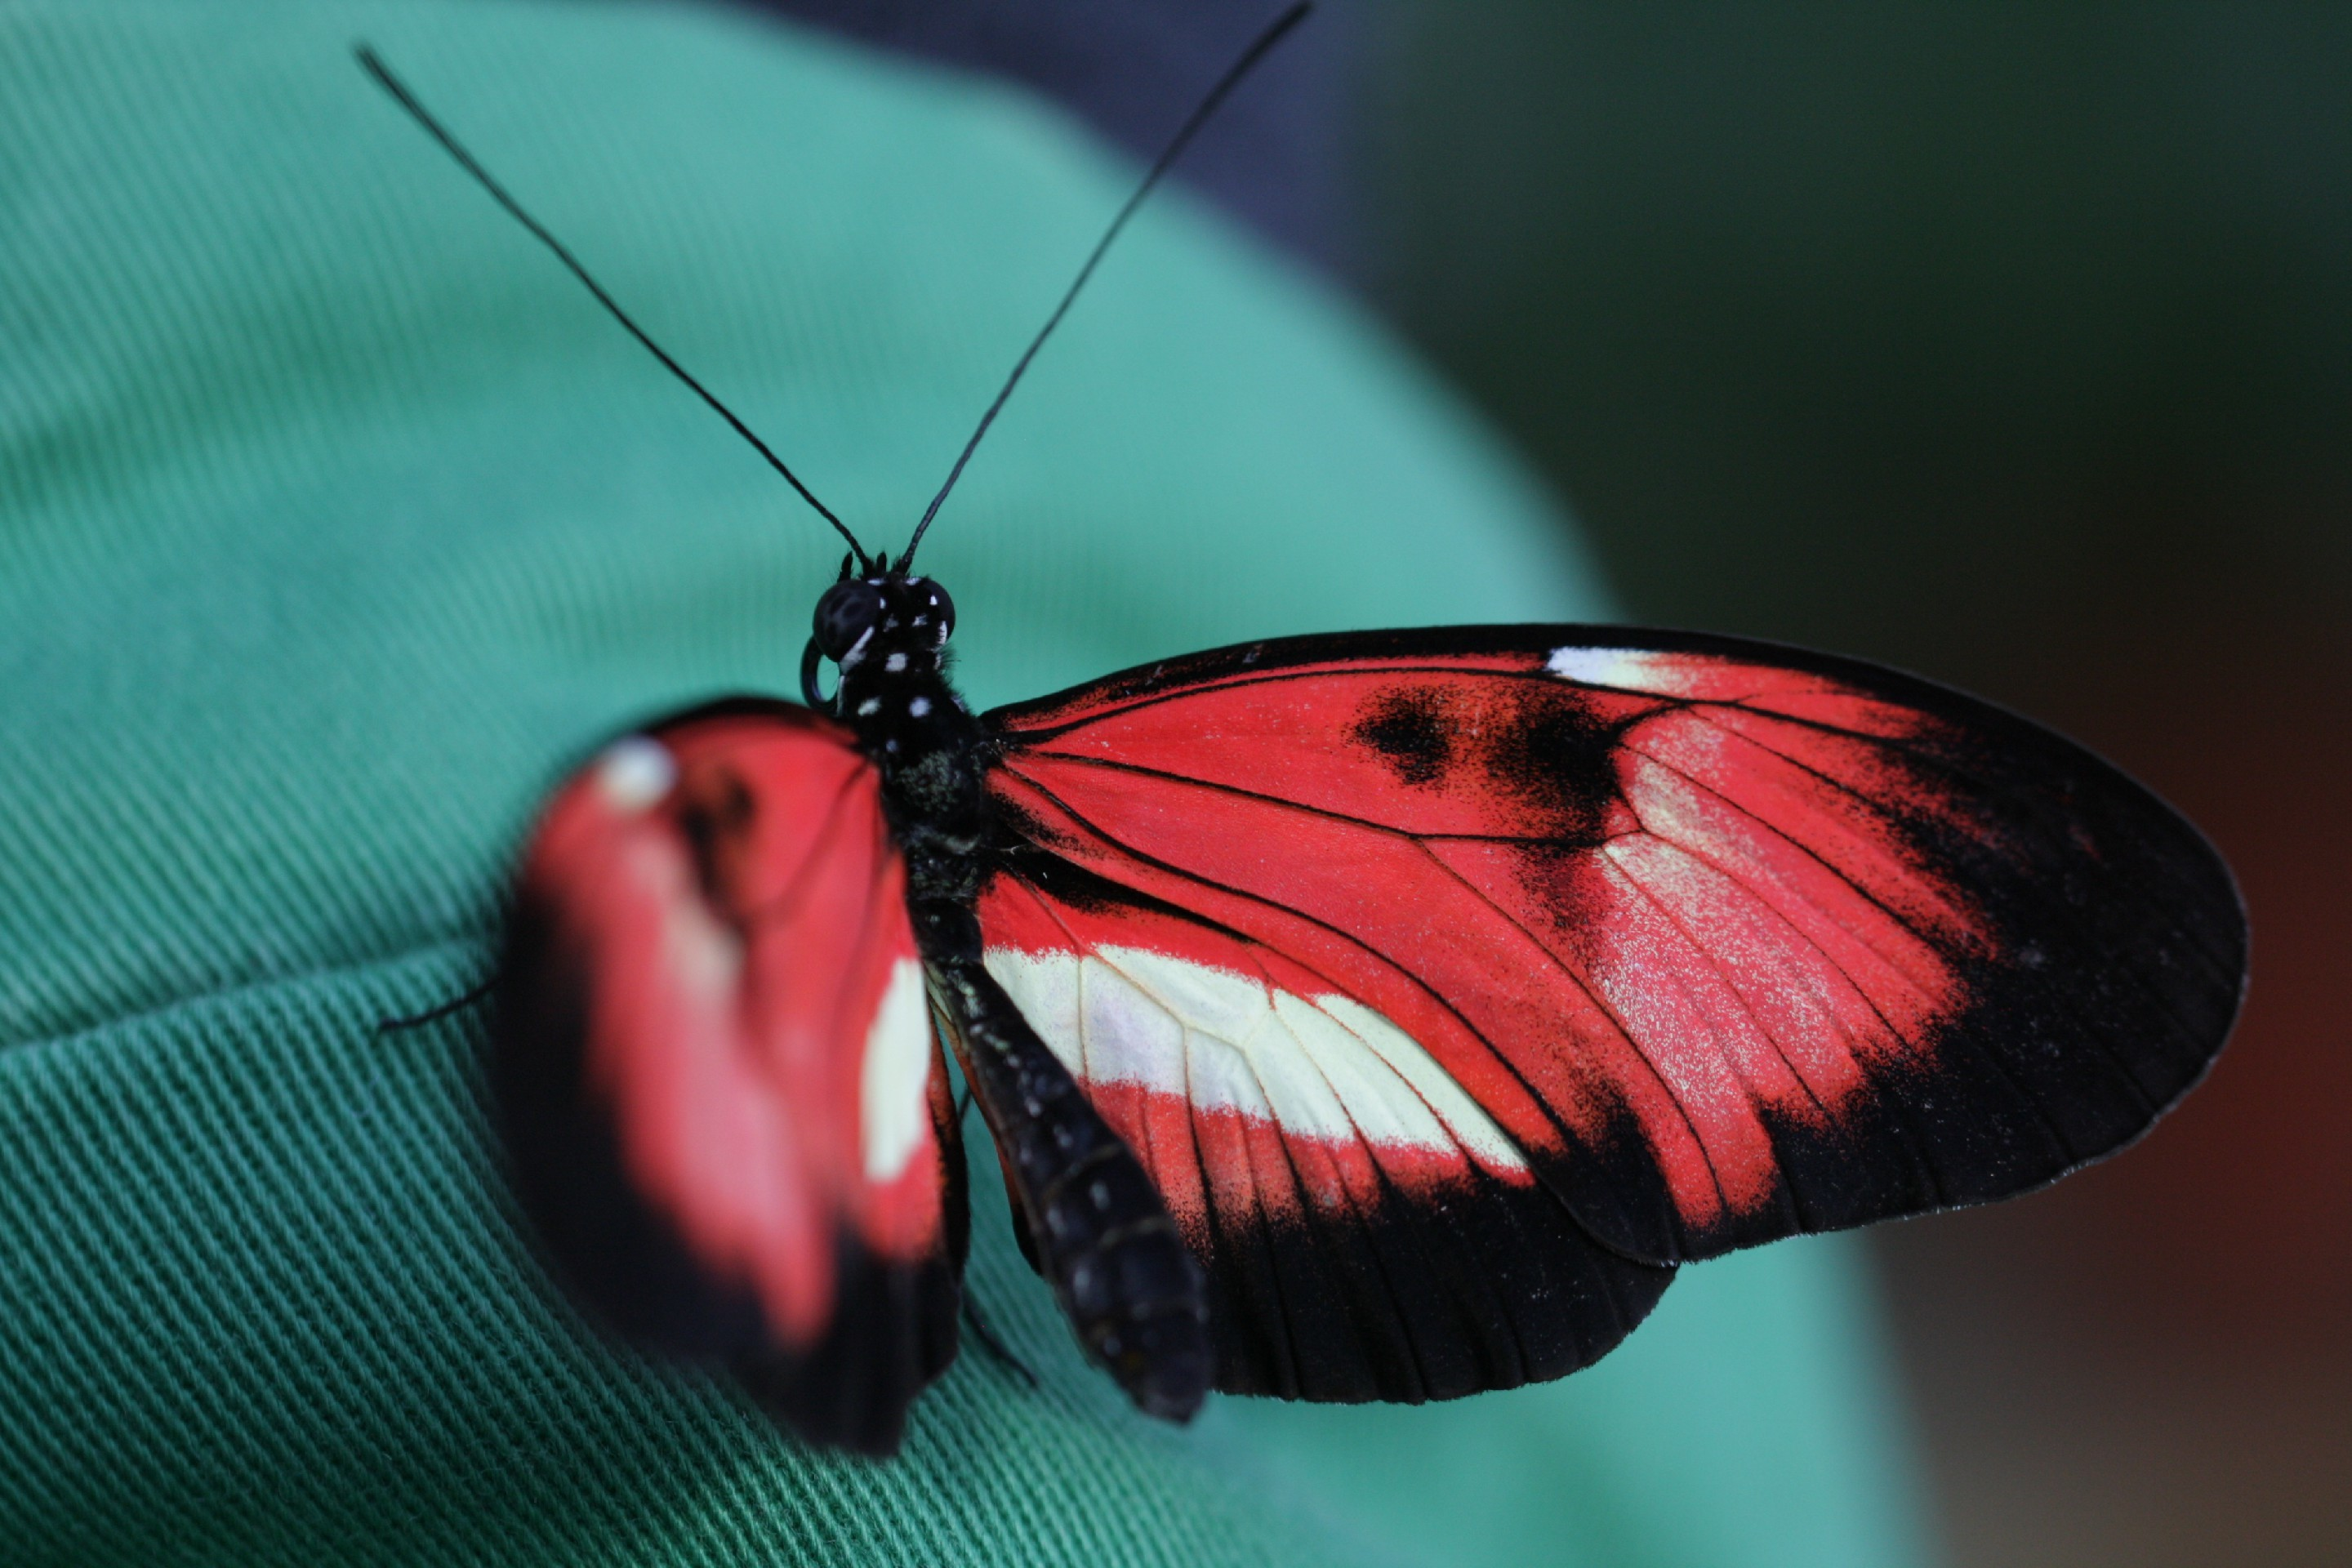 Image: butterfly, beauty, nature